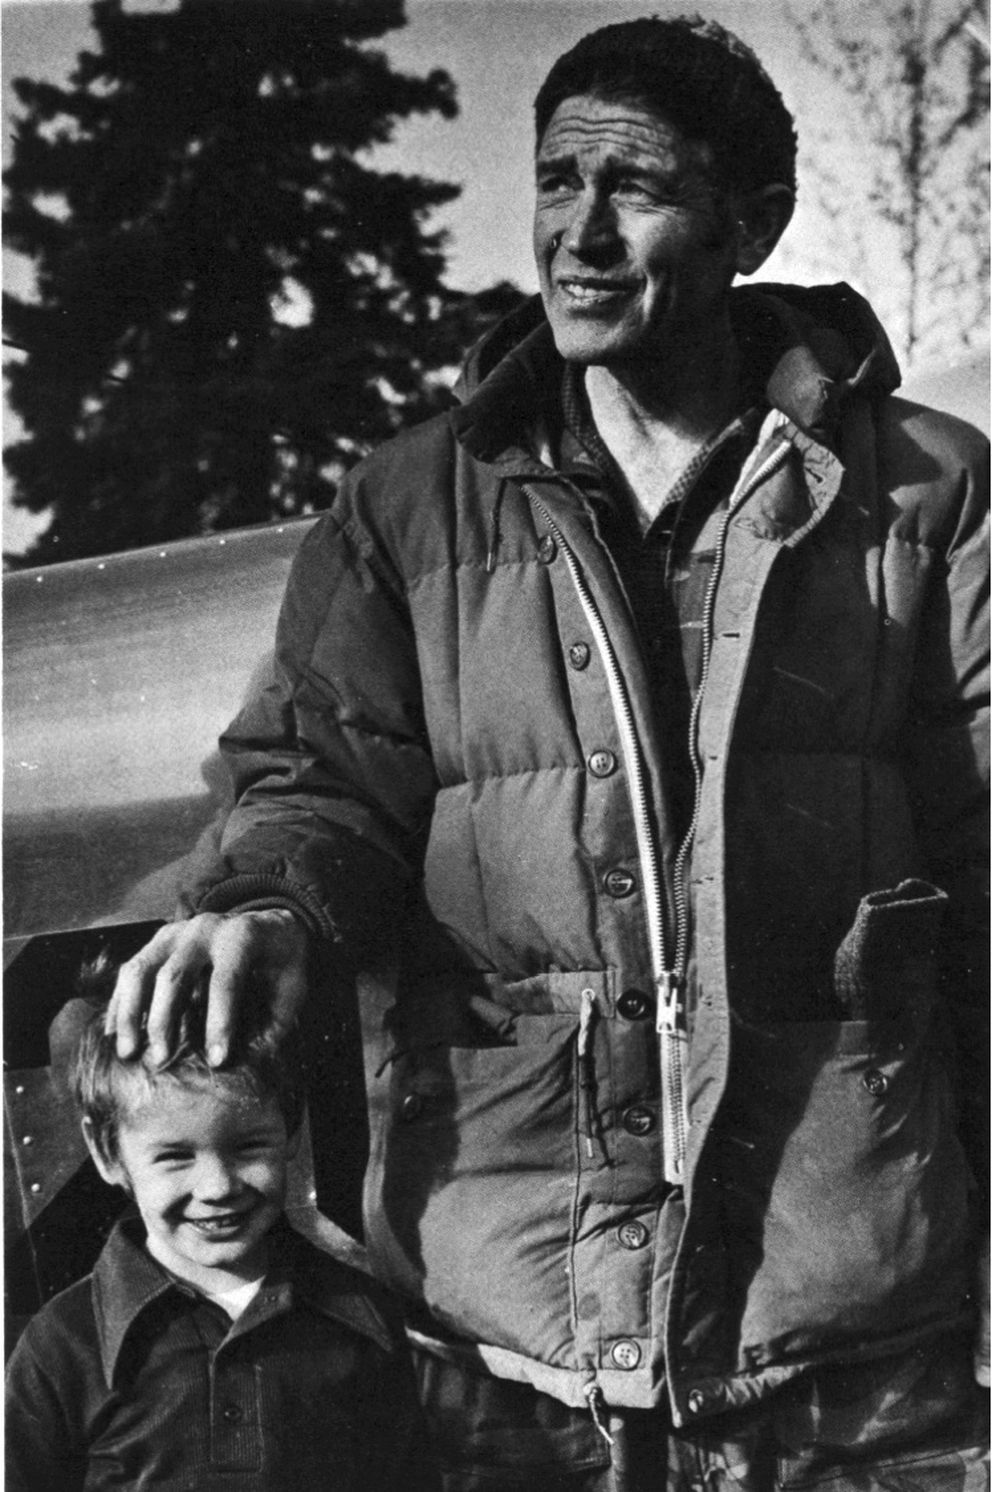 Don Sheldon and son Robert in this 1974 photo. (Photo provided by the Sheldon family)